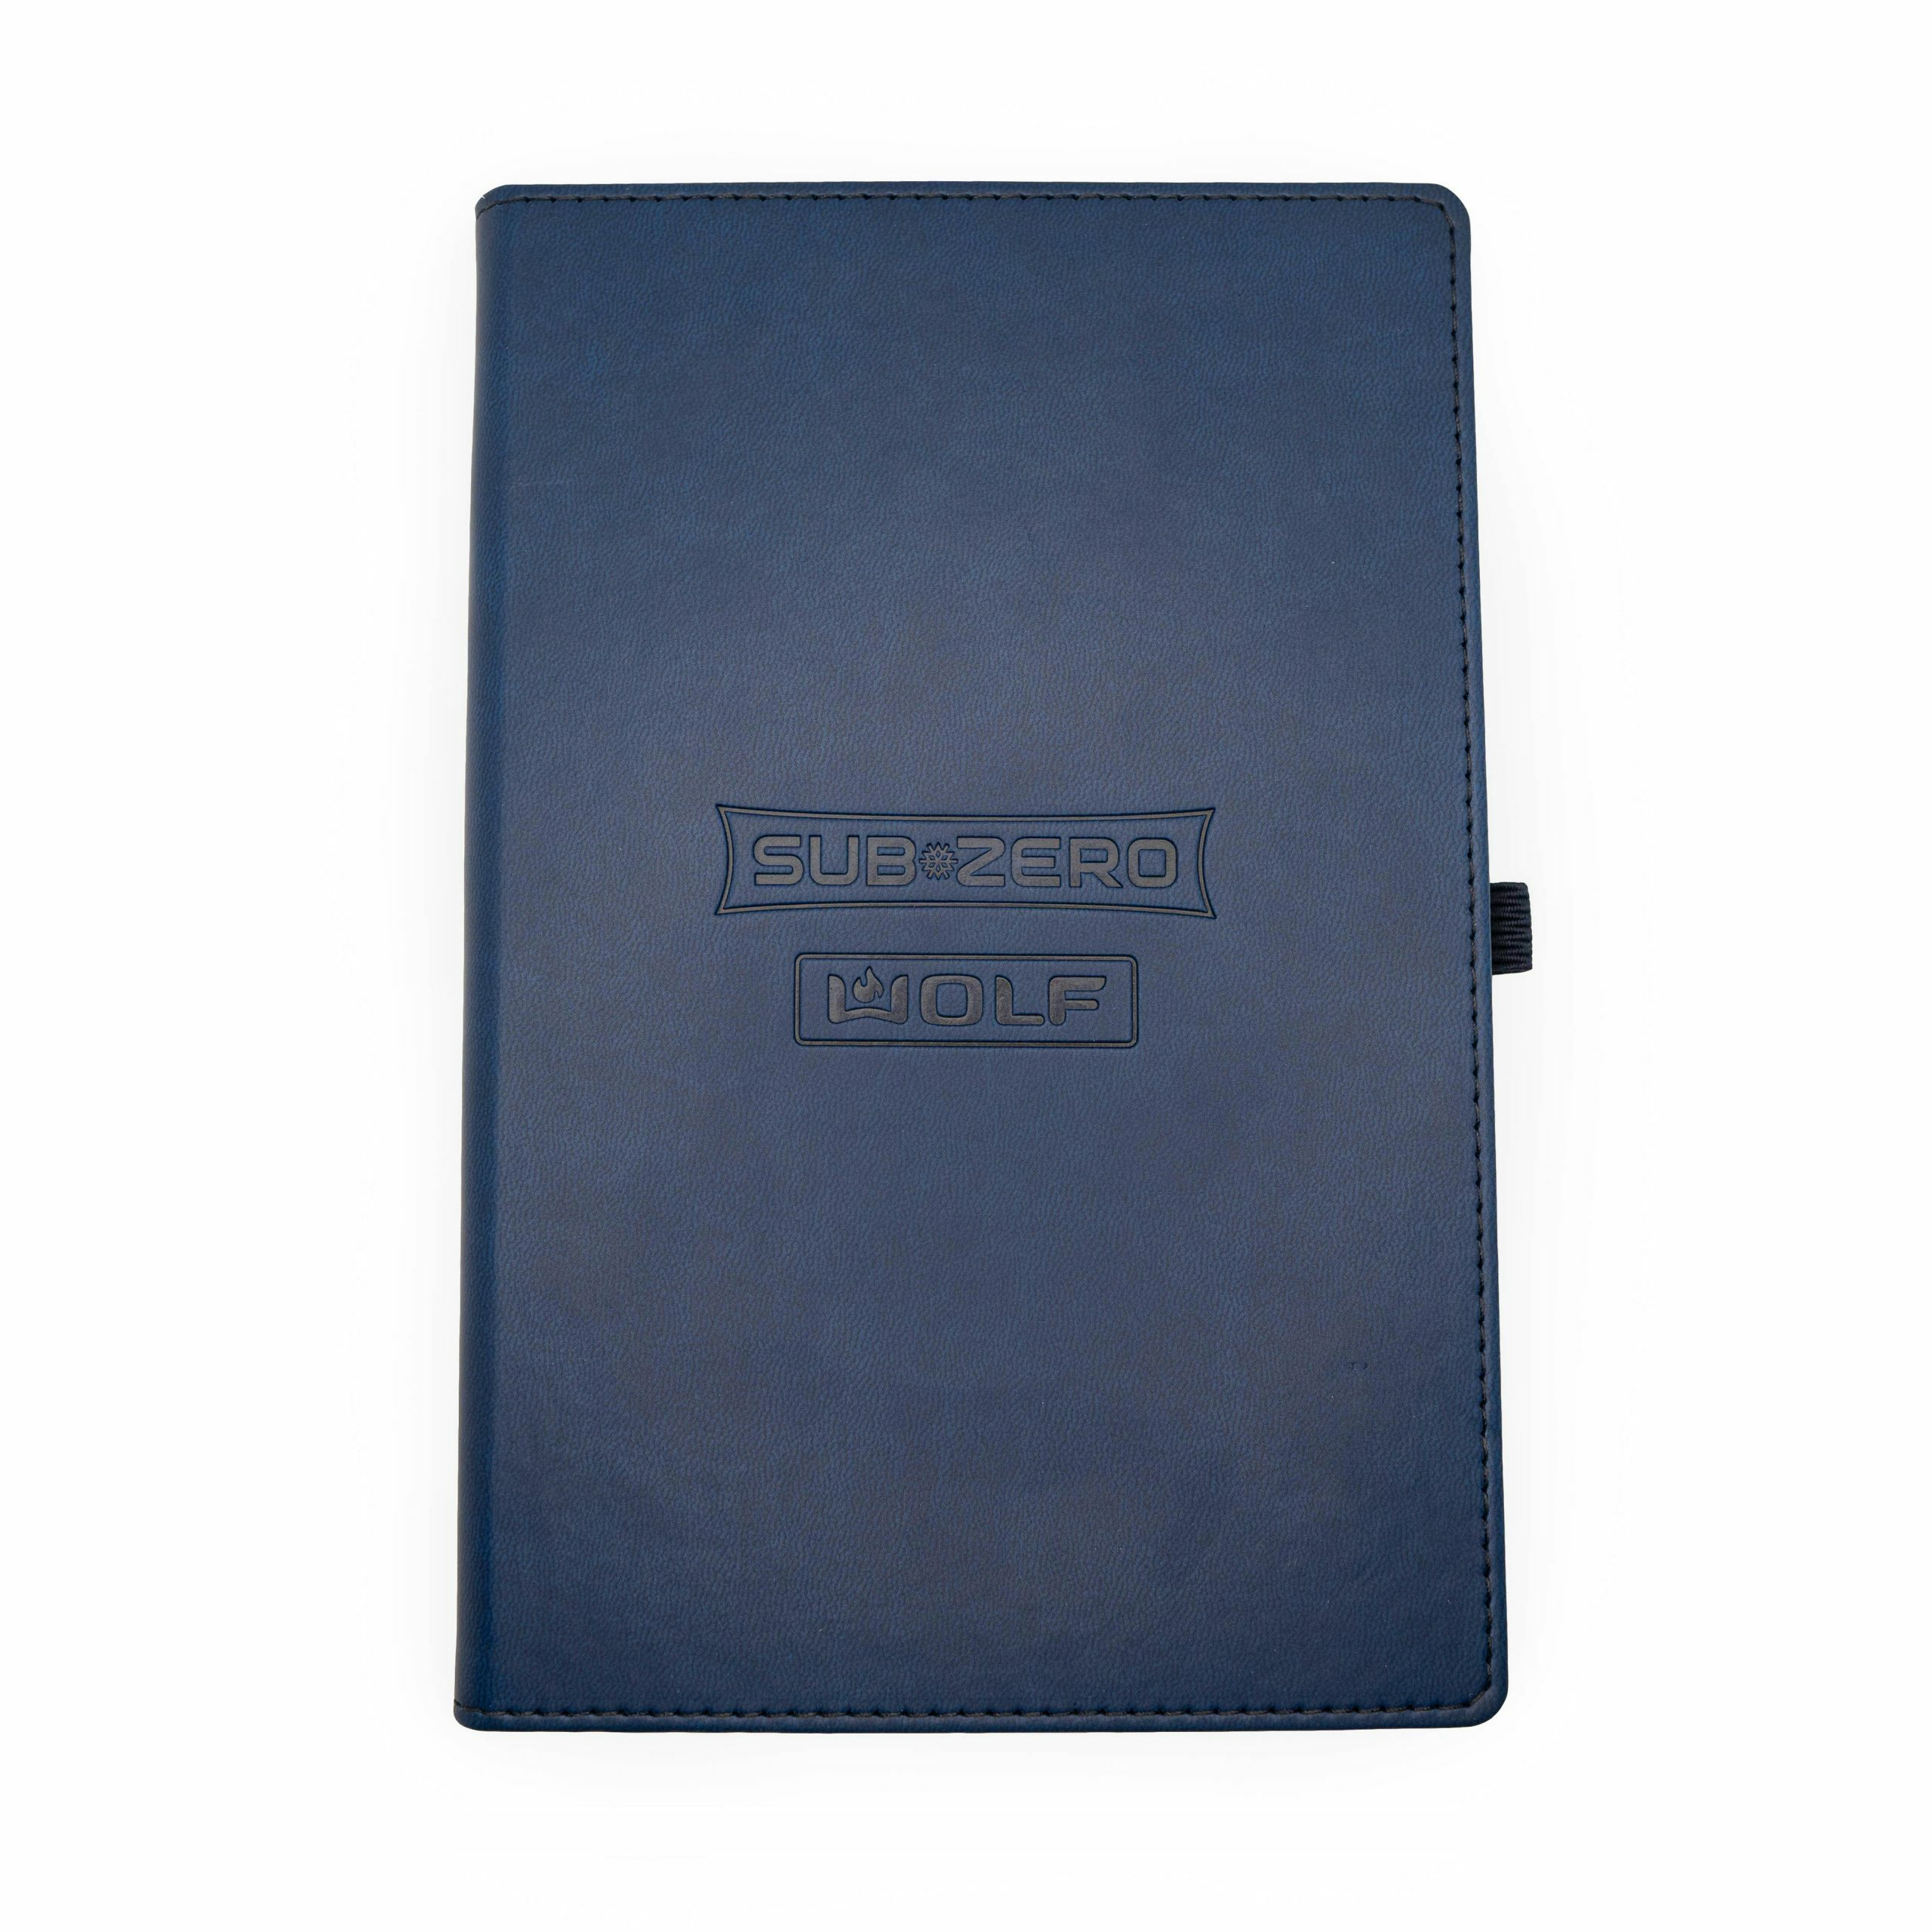 Notebook scaled